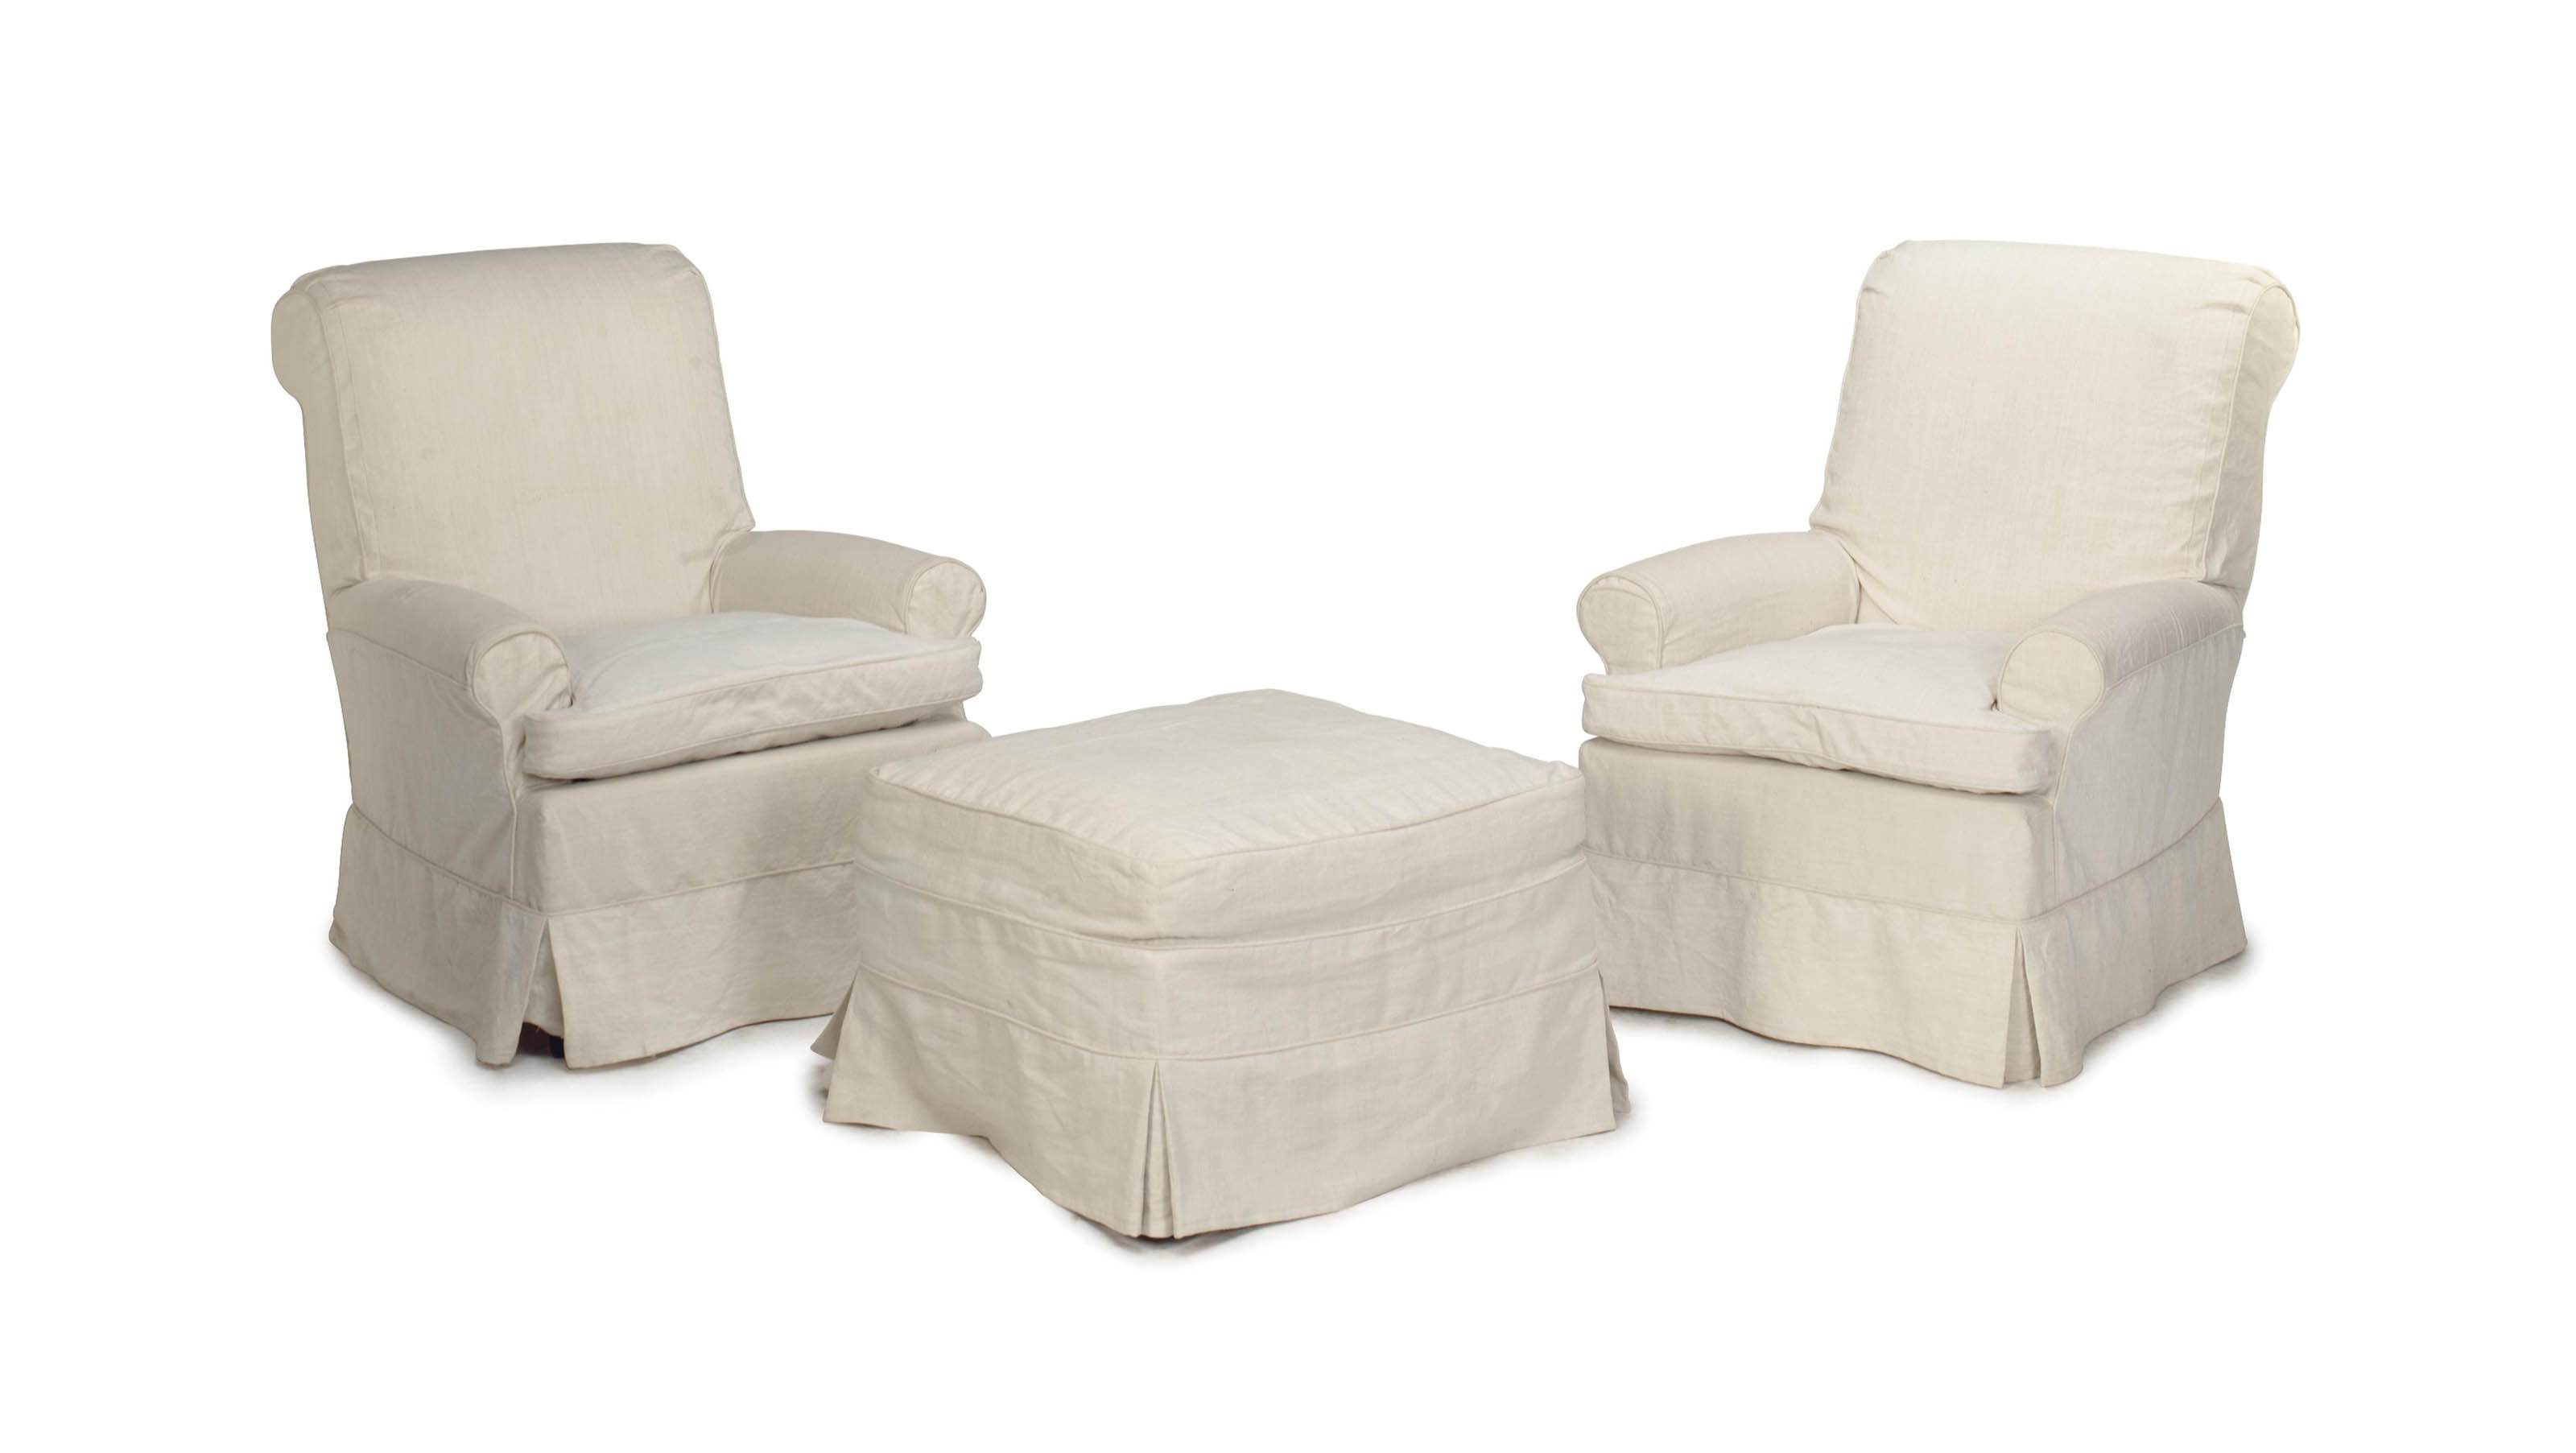 A Pair Of Off White Linen Upholstered Club Chairs And An Ottoman